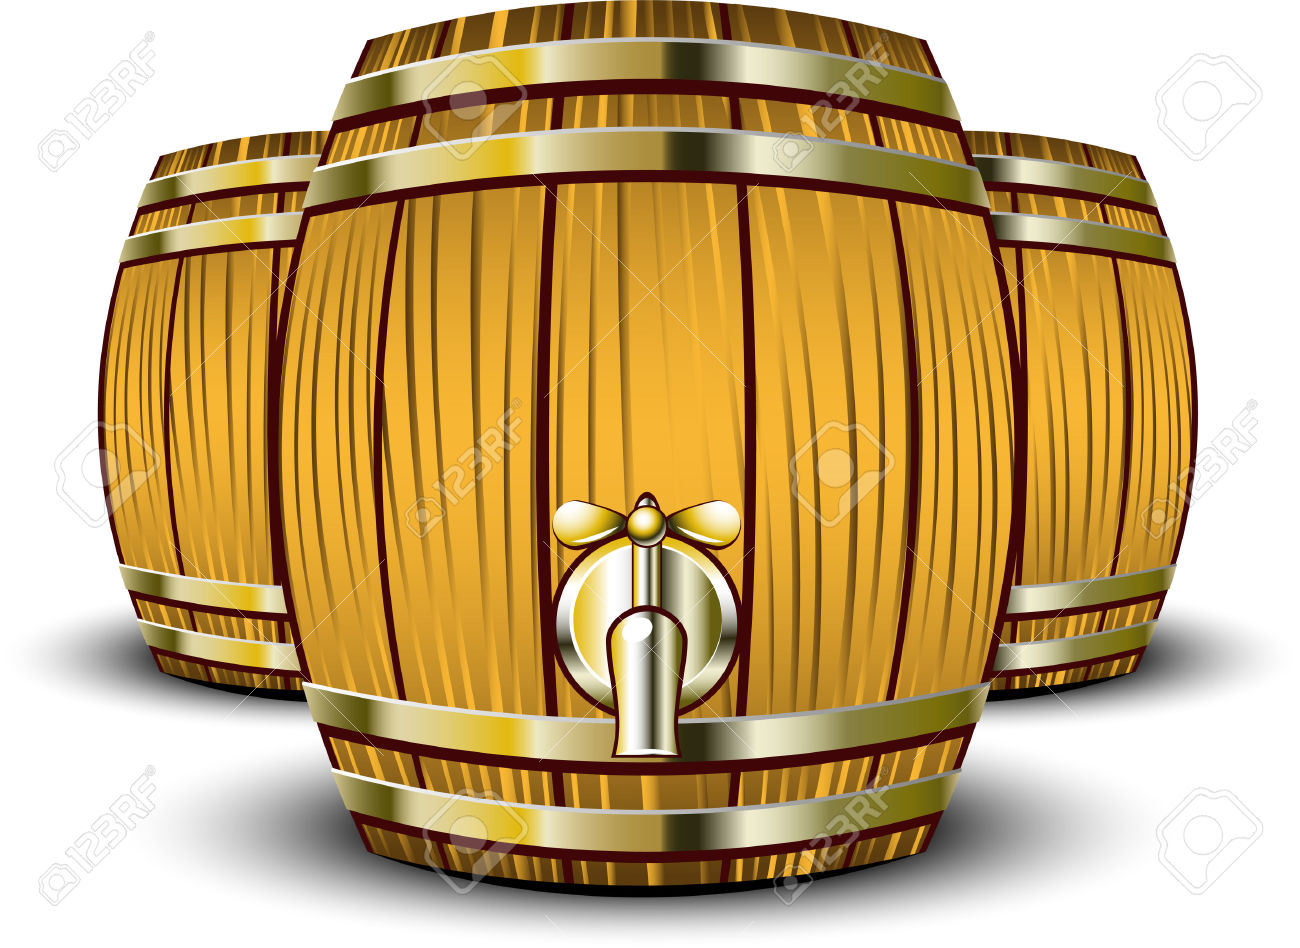 19 images KEGS clipart 1300